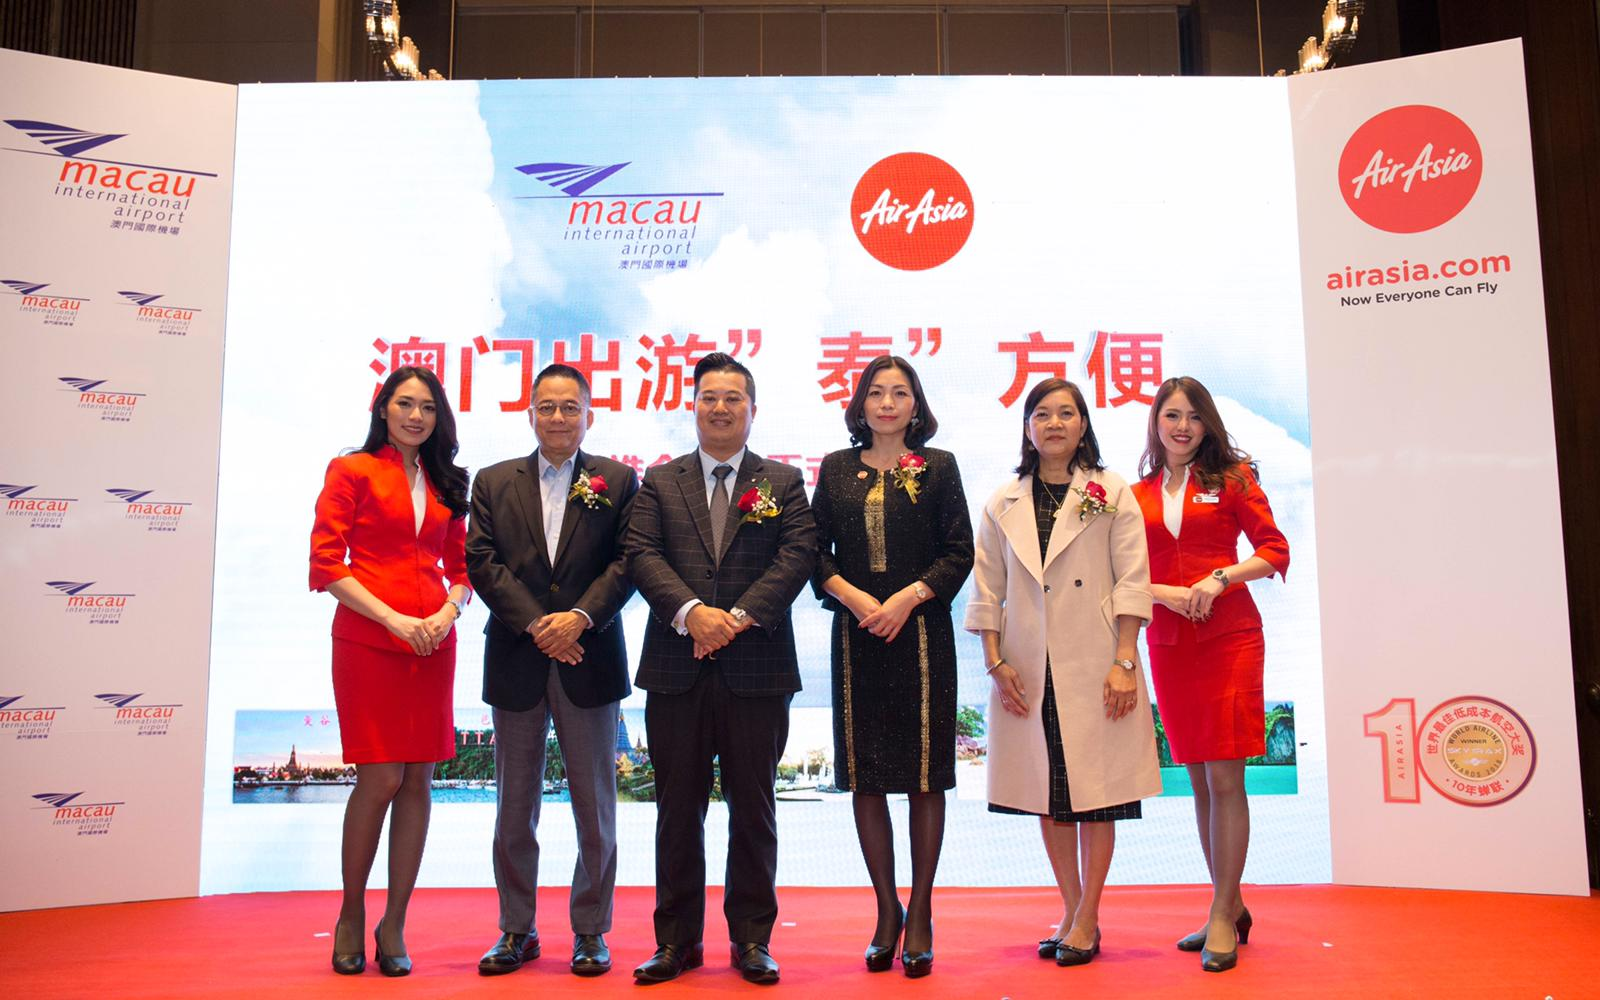 Photo caption: (From the left 2) Mr. Peter Chan, Head of Ground Operations & Cargo of Menzies Macau Airport Services, Mr. Eric Fong, Director of Marketing Department of Macau International Airport Company Limited, Ms. Celia Lao, CEO of AirAsia Hong Kong and Macao, Ms. Inthira Vuttisomboon, director of Tourism Authority of Thailand Guangzhou Office